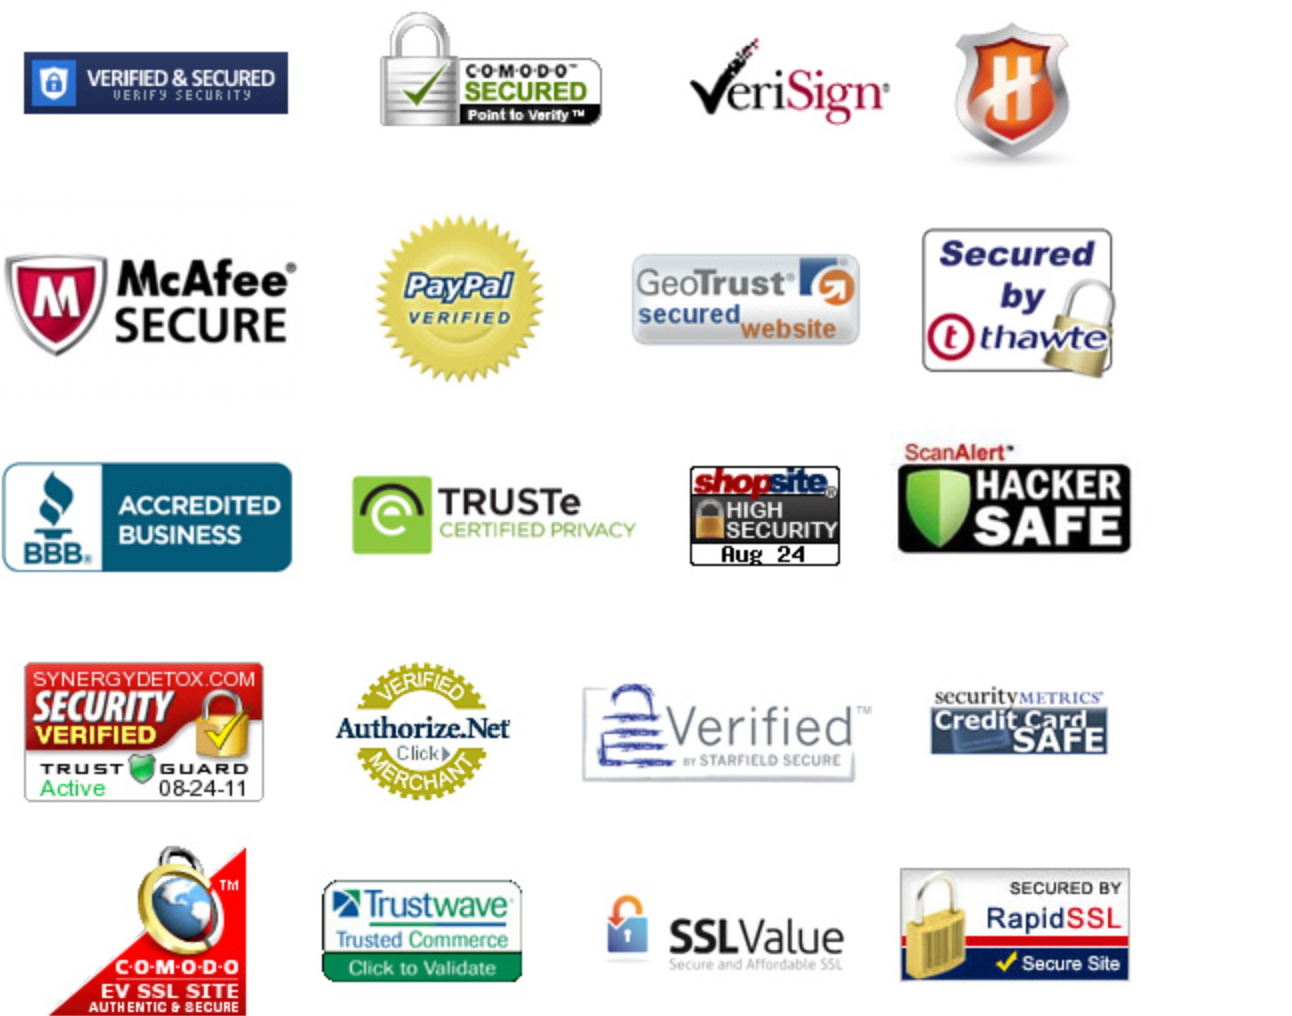 Trust badges that can be used in an ecommerce store